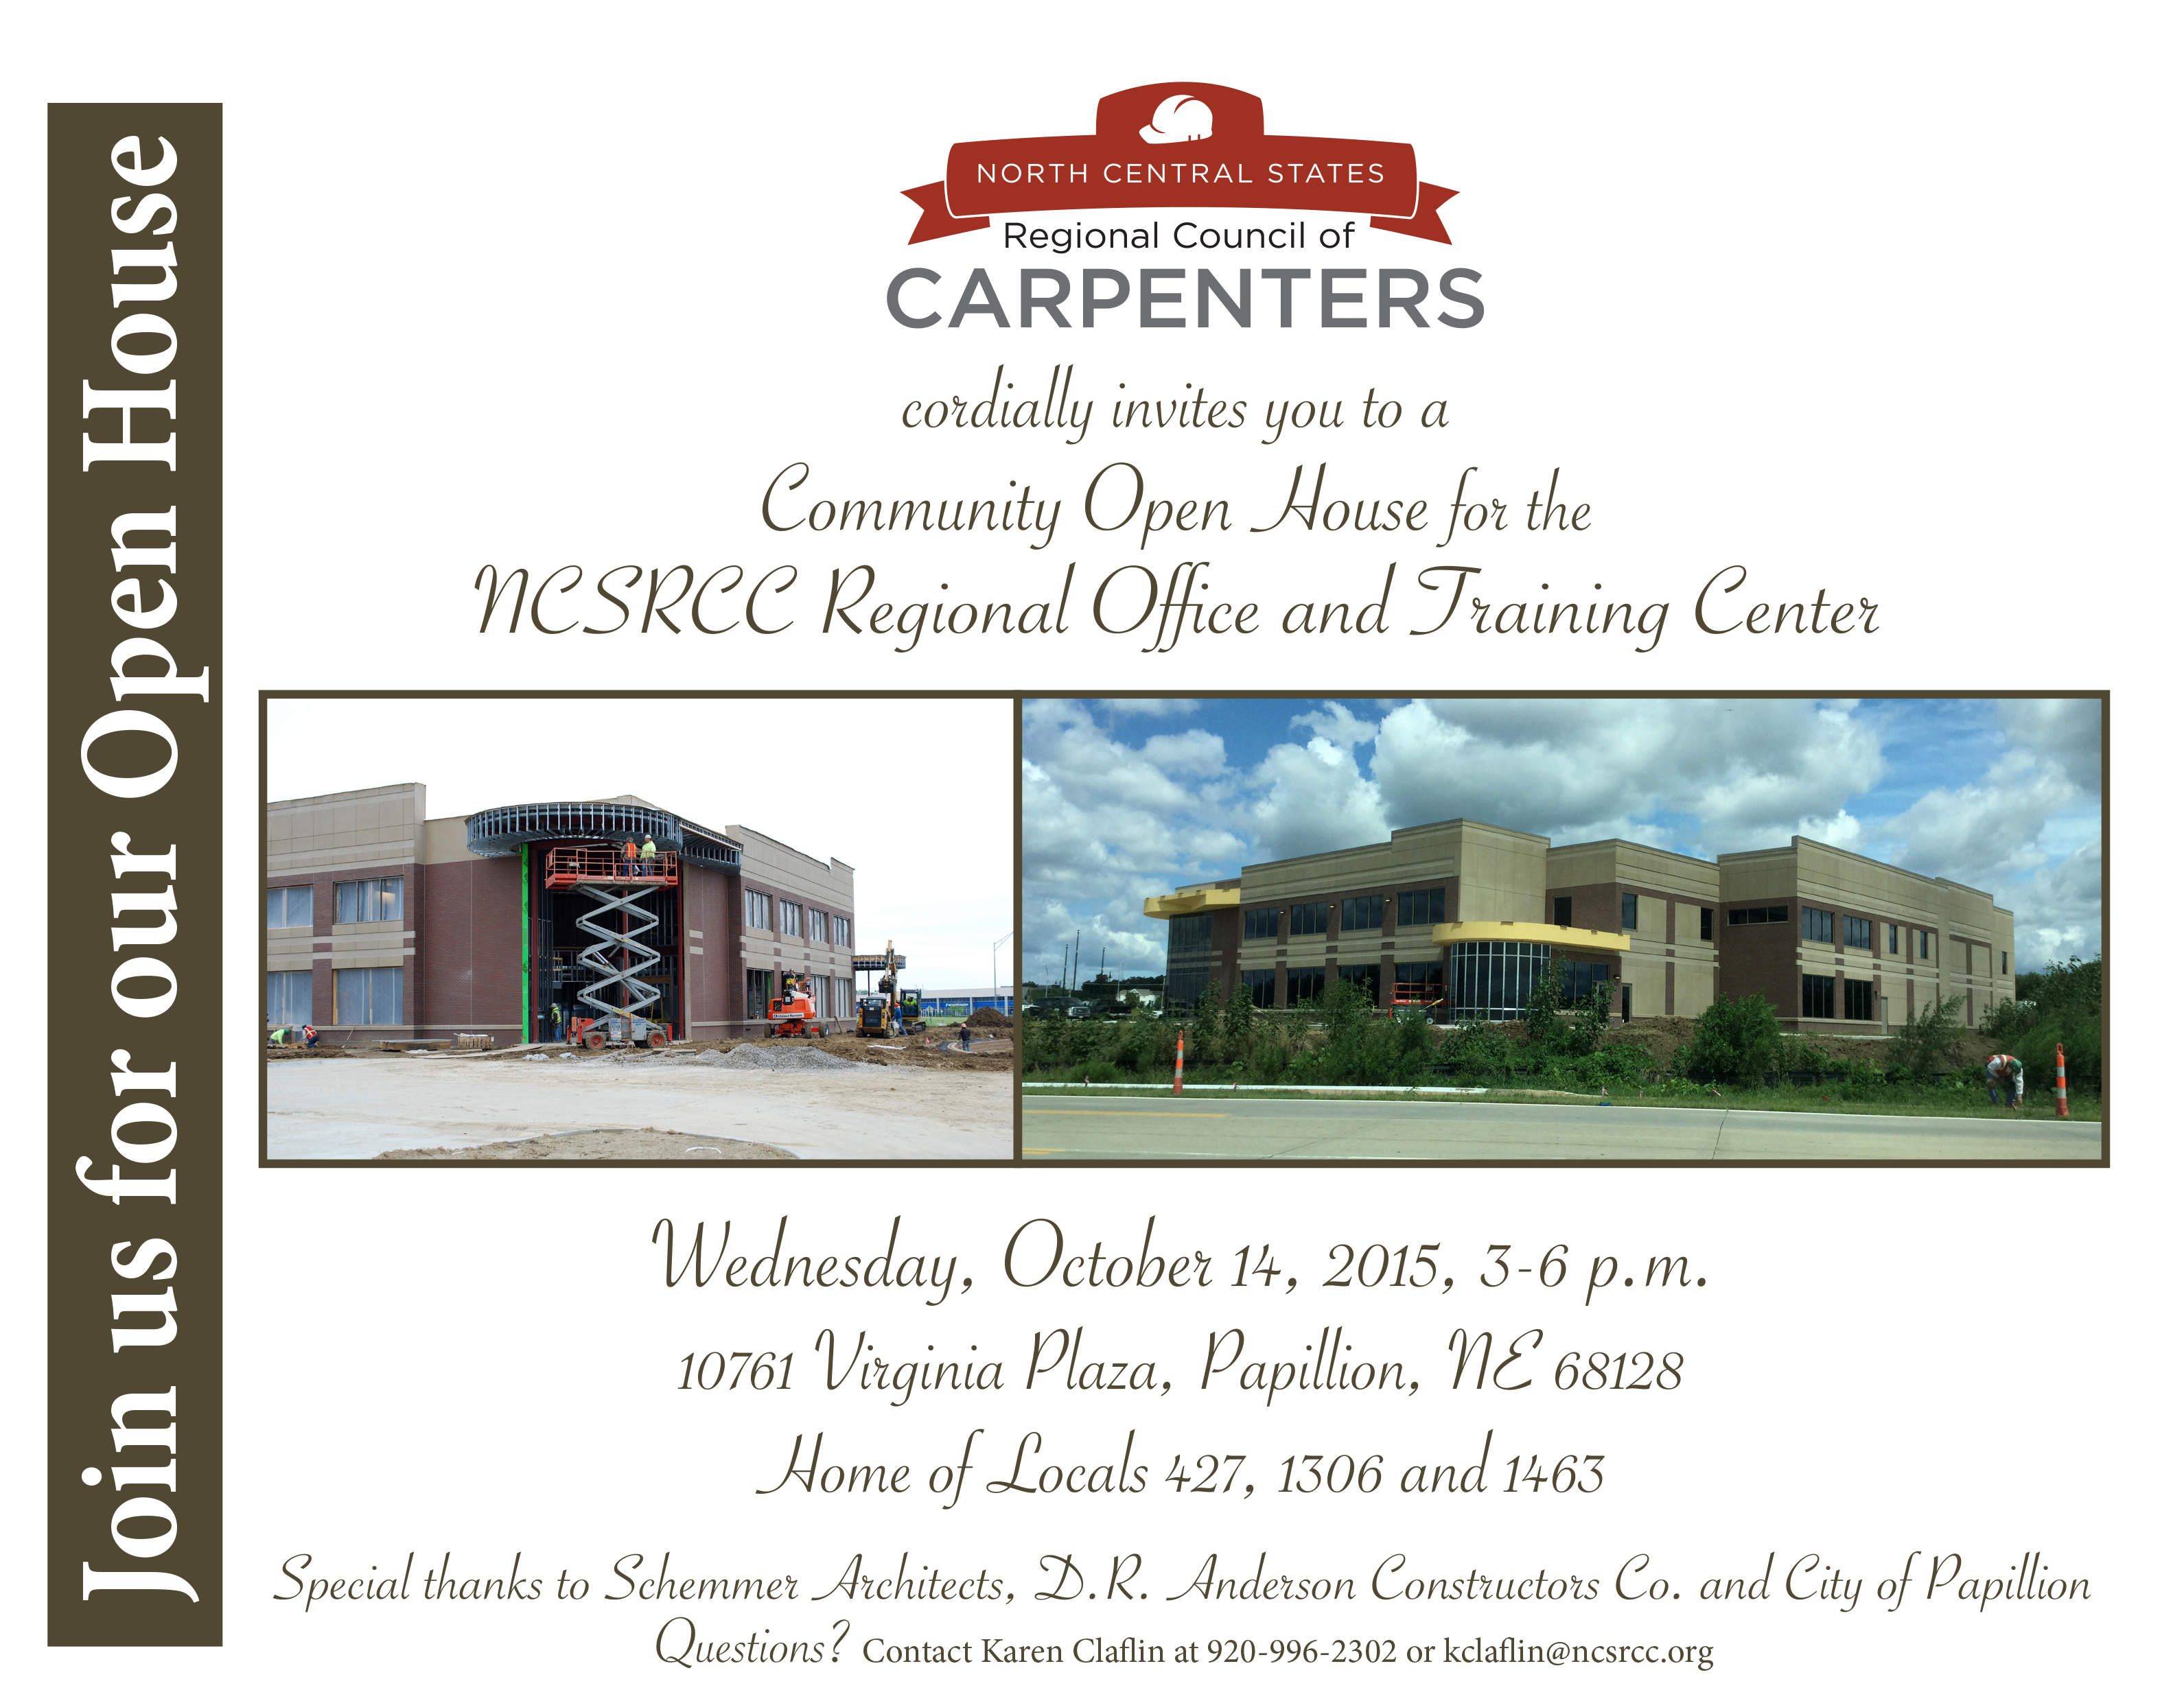 North central states regional council of carpenters invitation to omaha open house invitation stopboris Choice Image